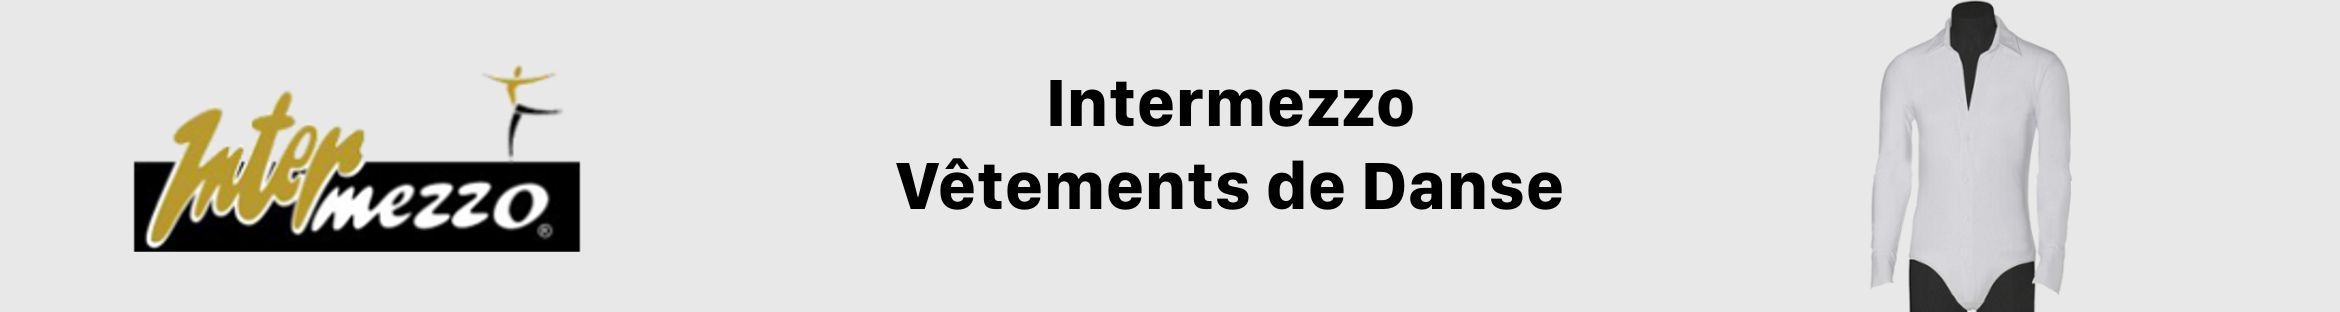 intermezzo-vetements-danse-sportive.png